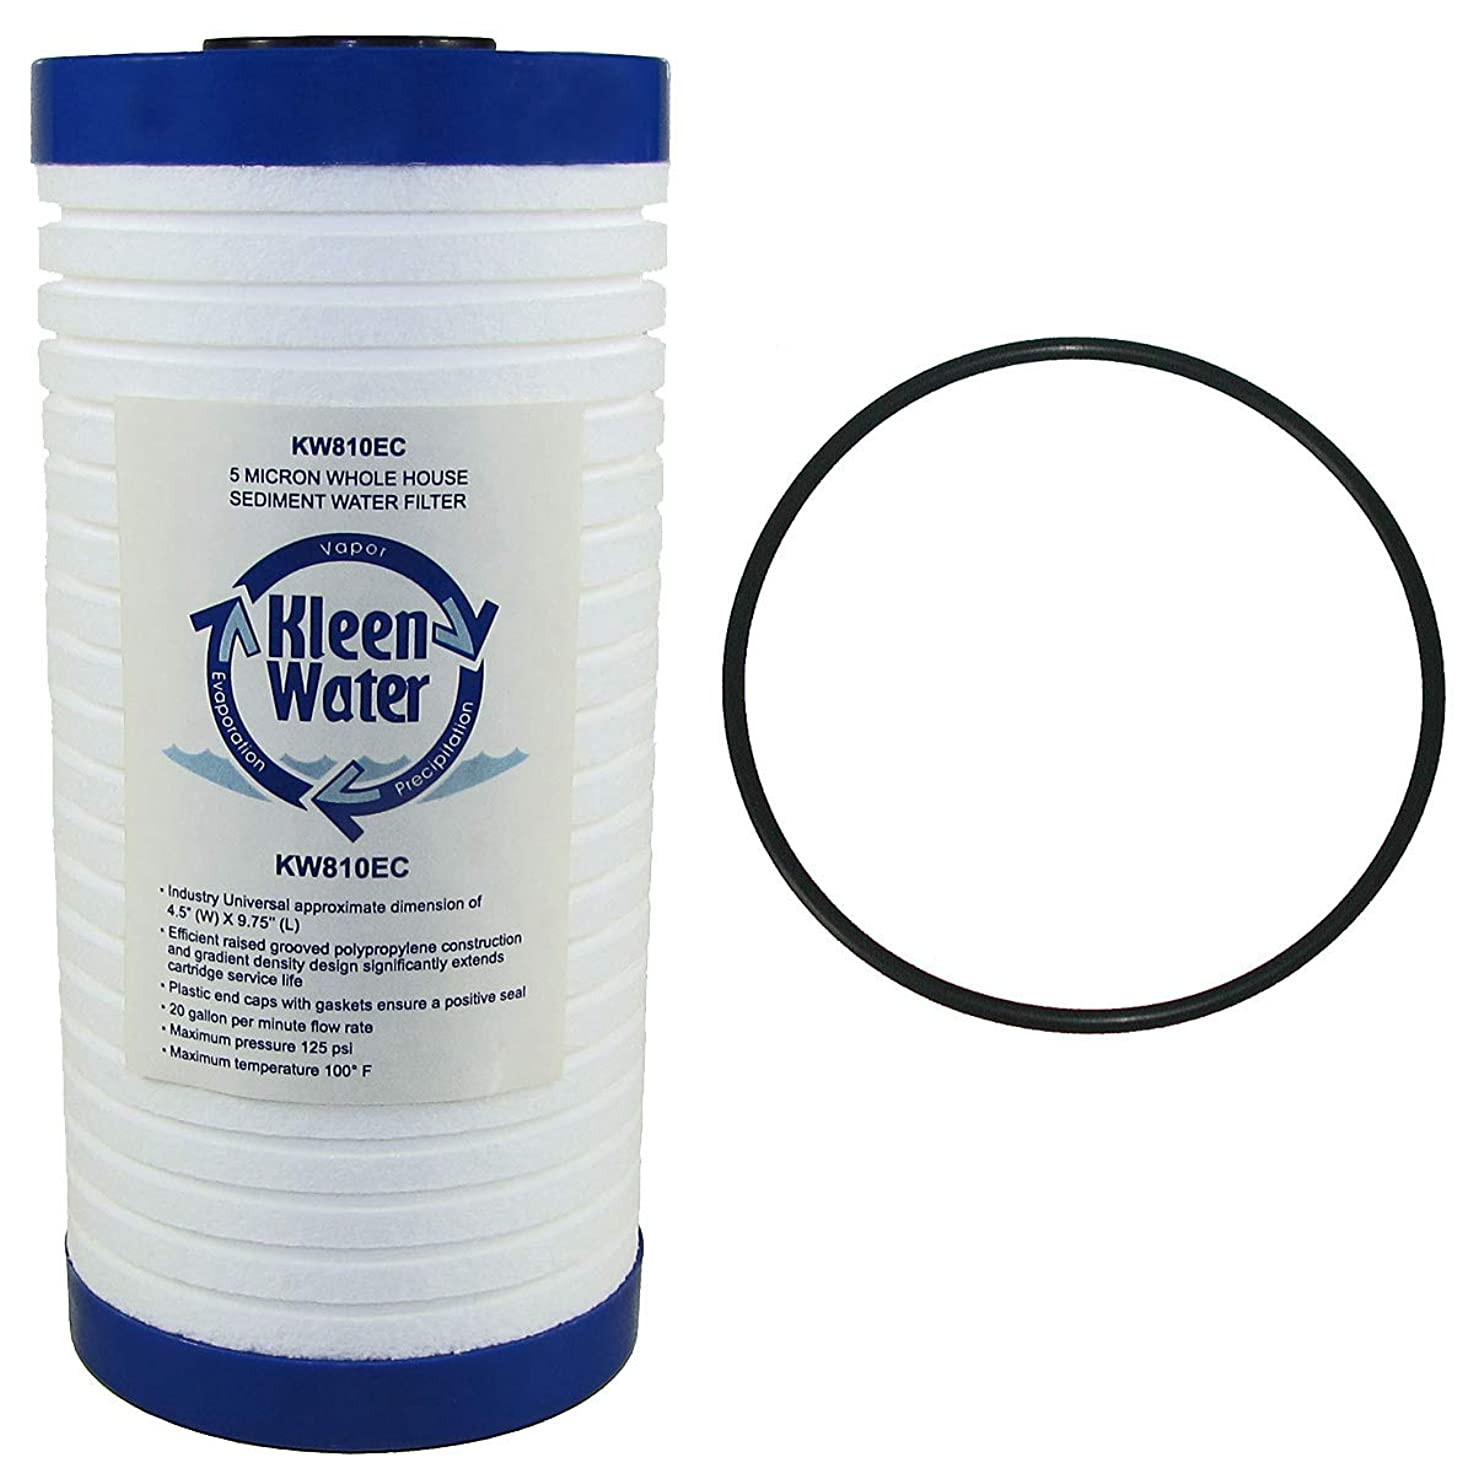 AP810, AP801 - Aqua-Pure - Compatible Water Filter Replacement Cartridge - 4 1/2 X 9 7/8 Inch - 5 Micron - by KleenWater with AP801 Oring